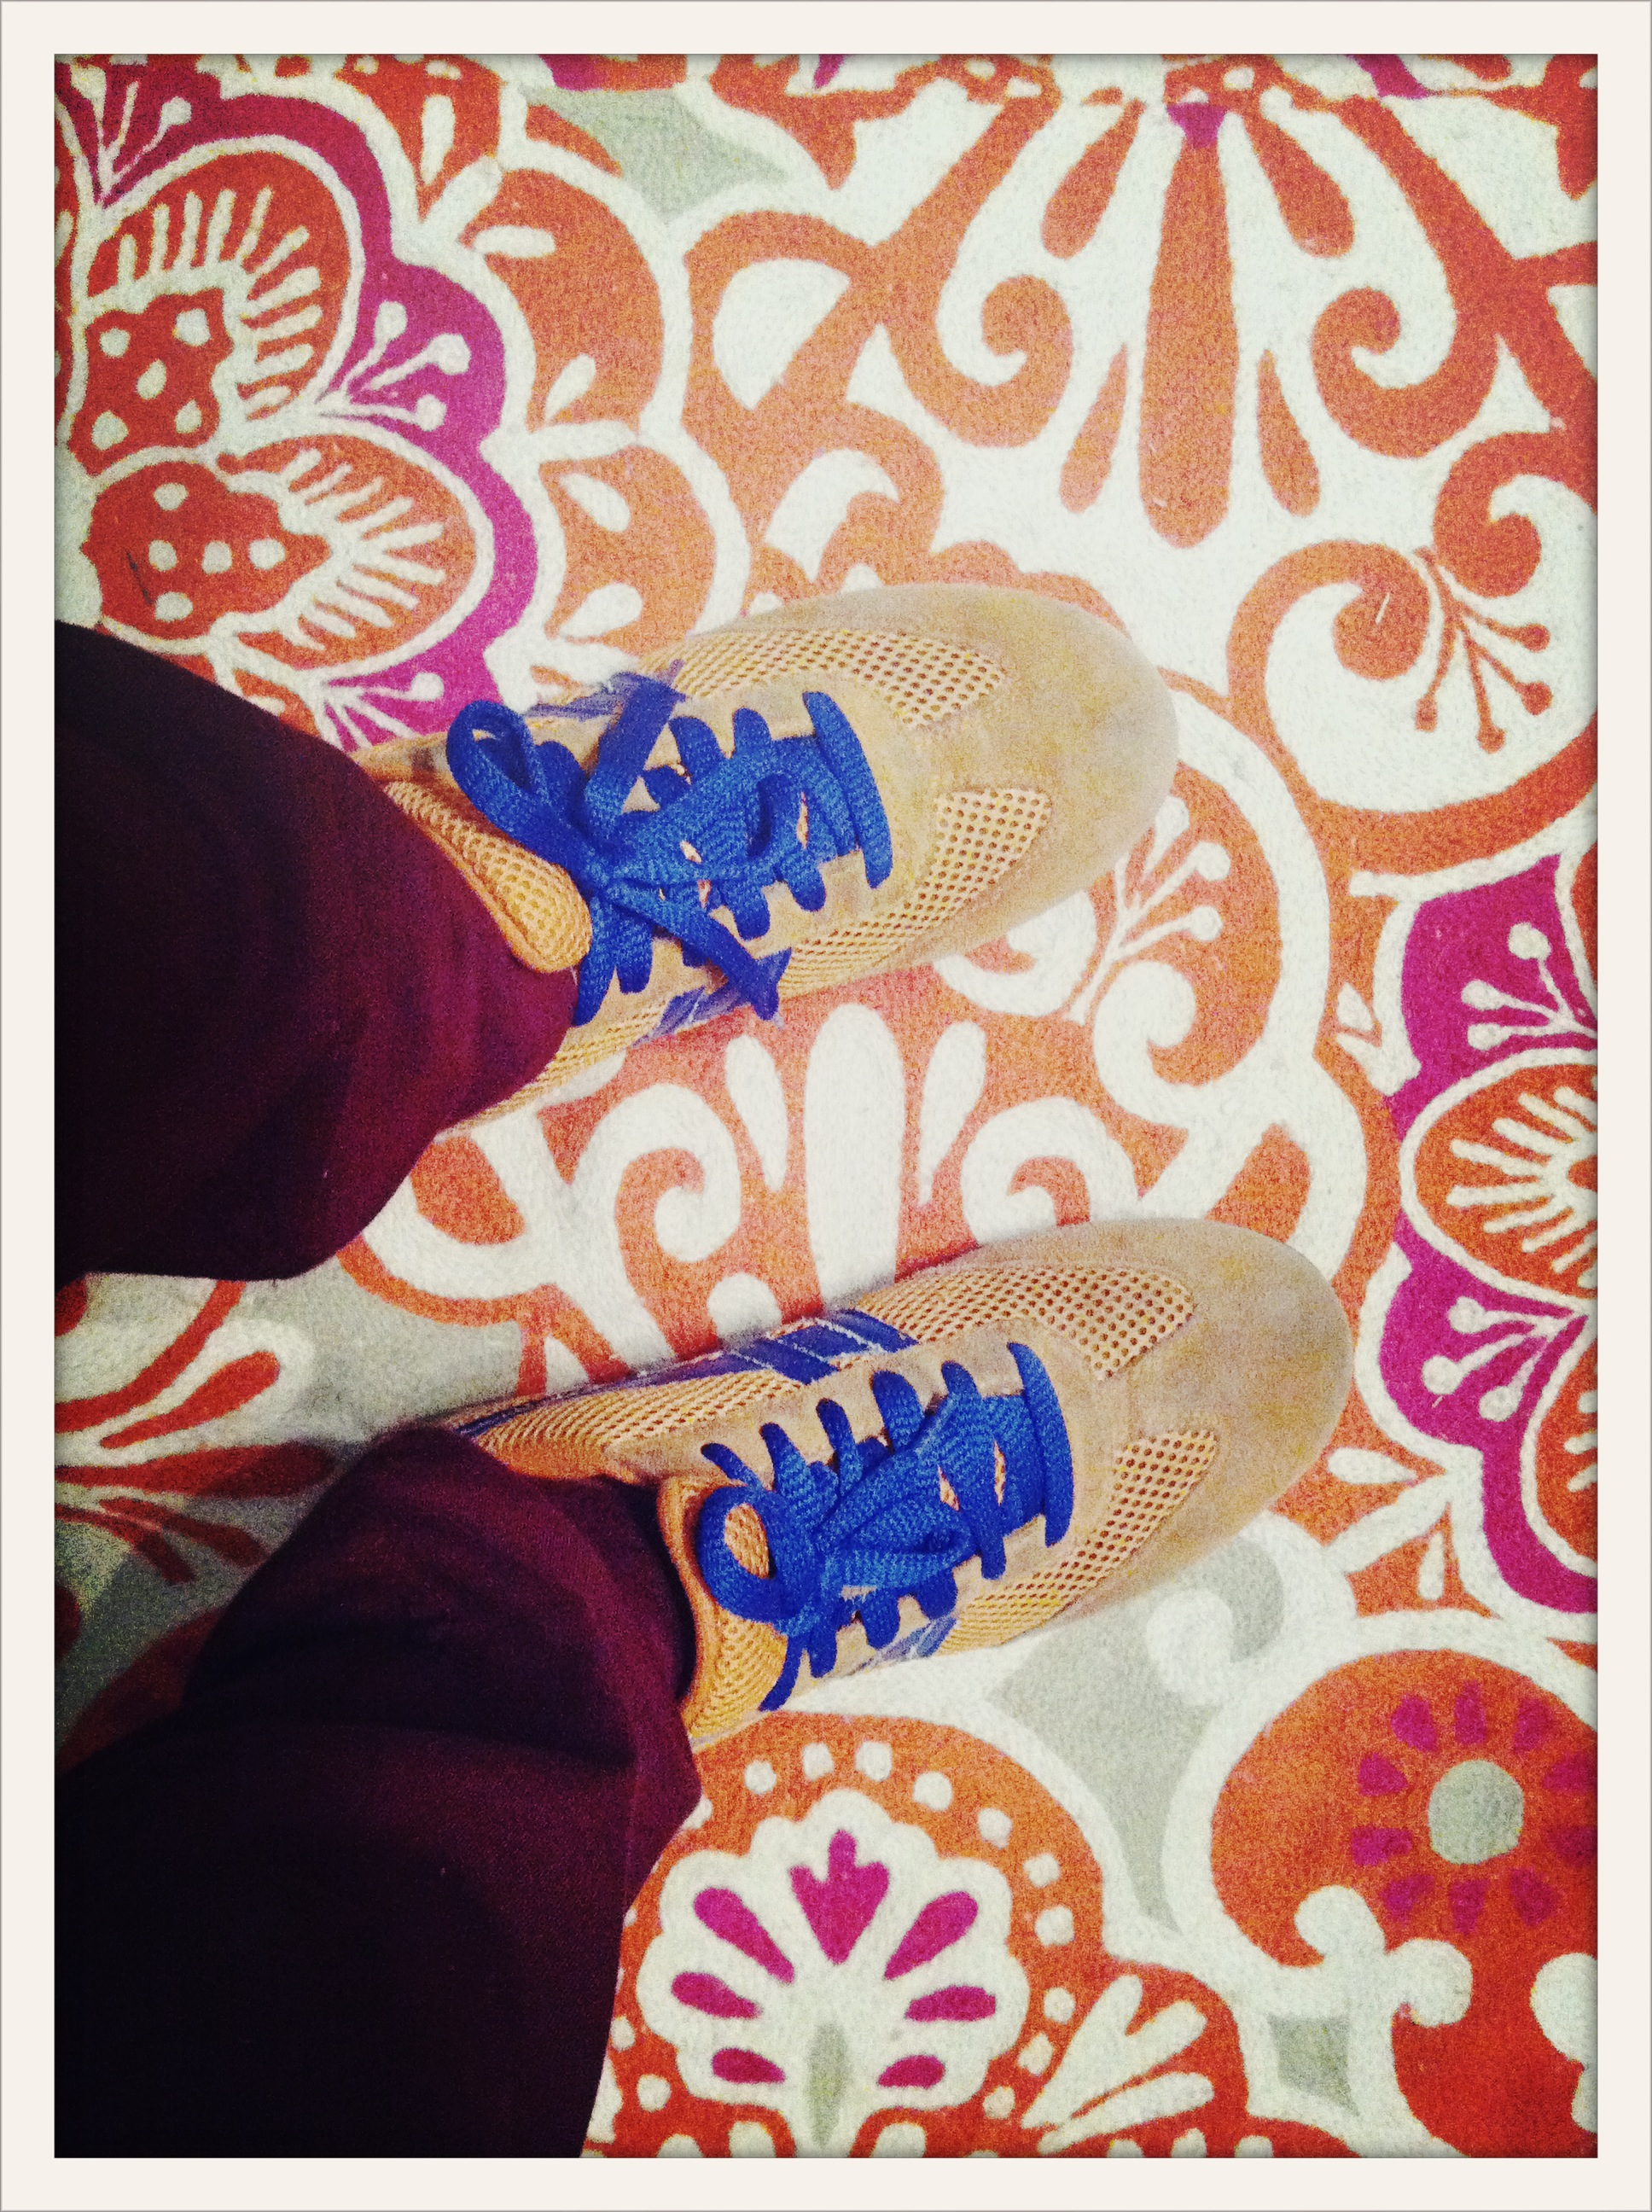 Payless sneakers on Anthro rug